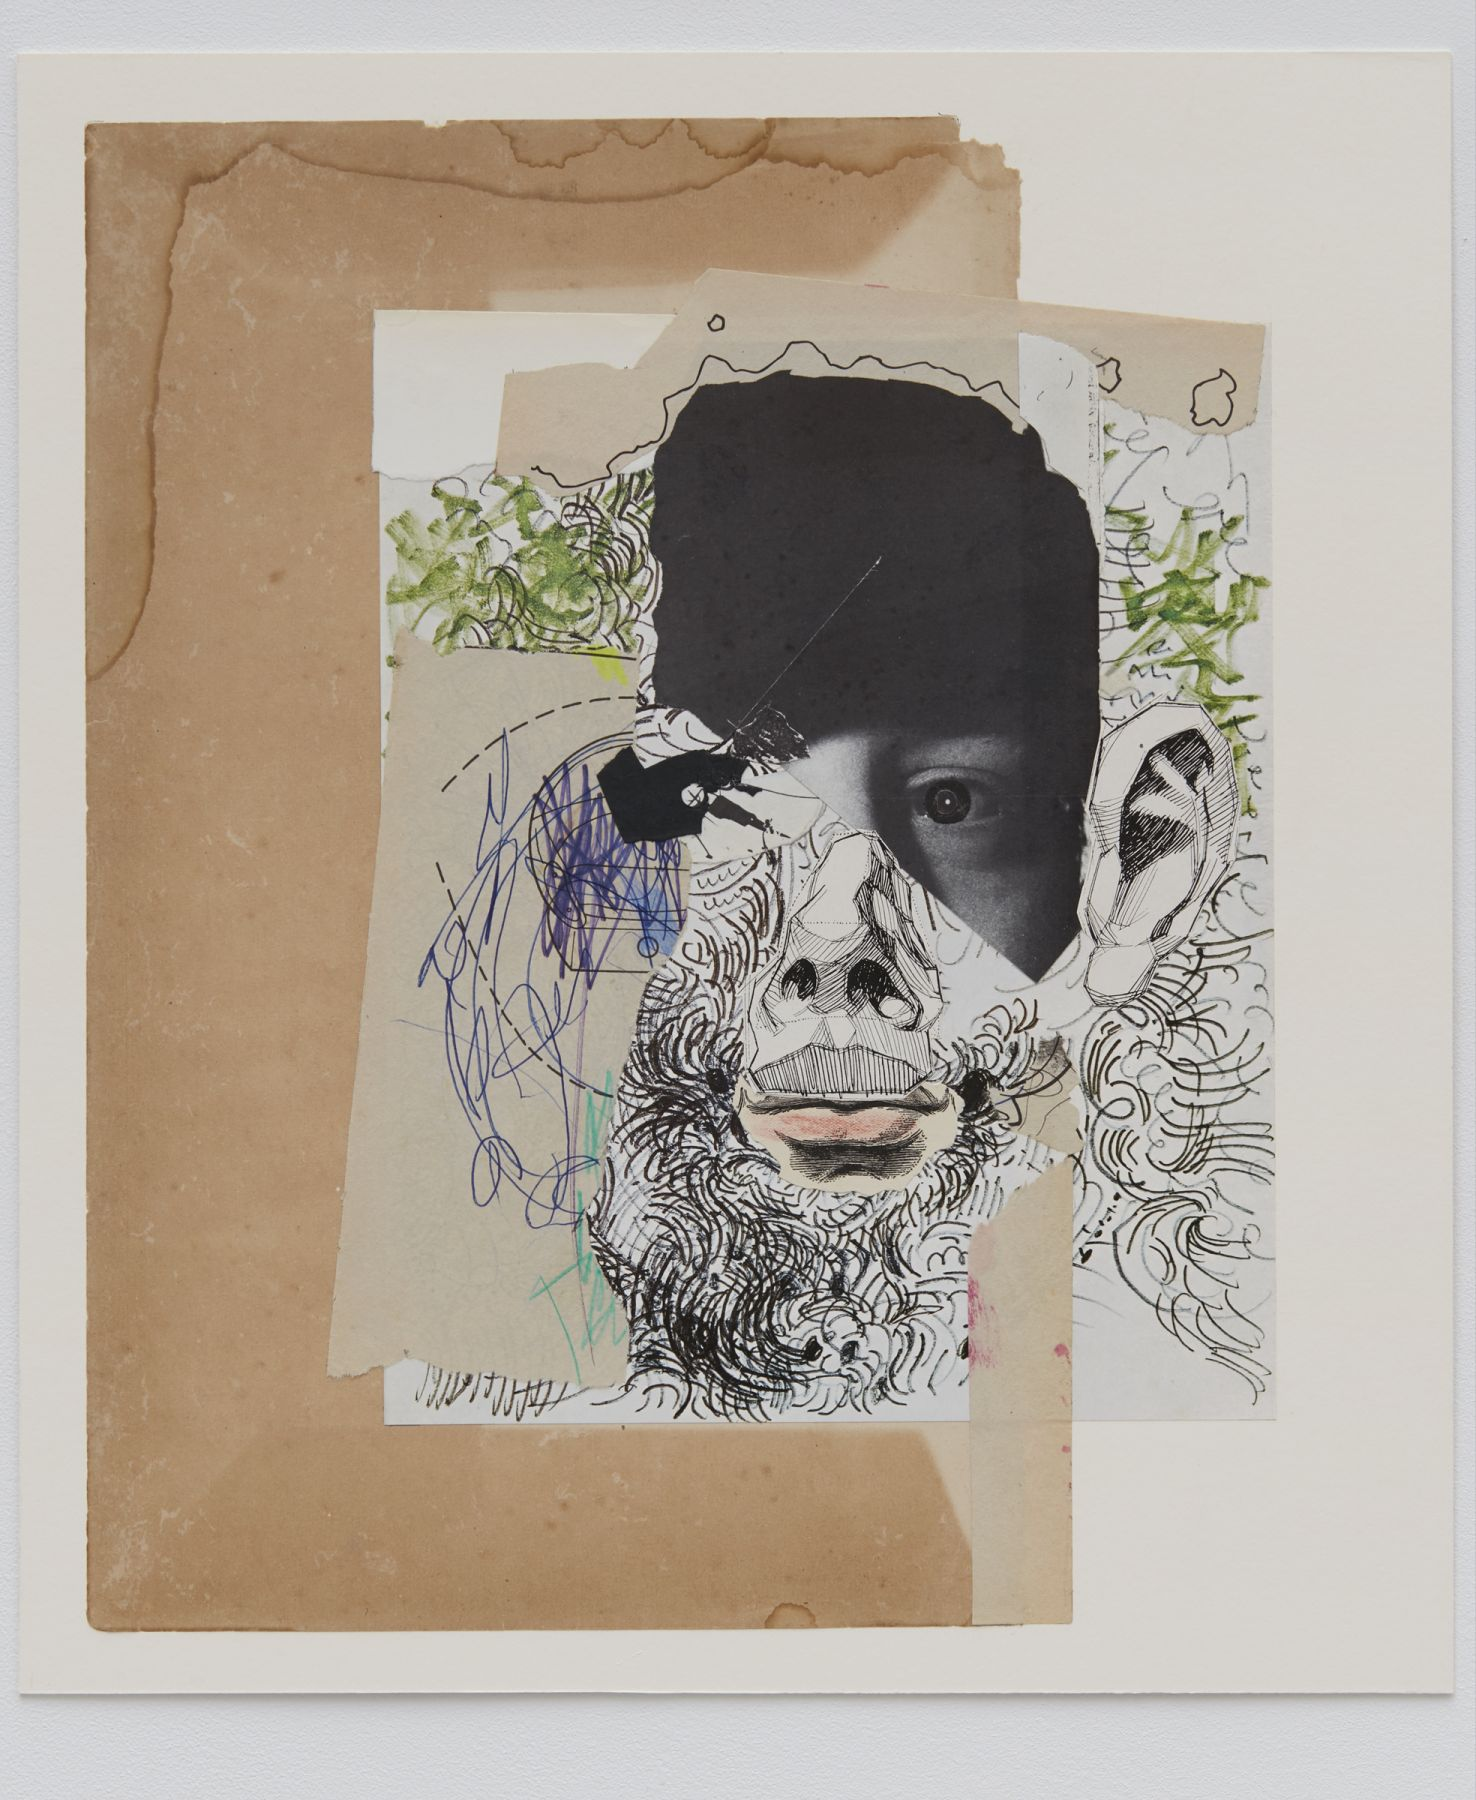 John O'Reilly Landscape Head, 2018